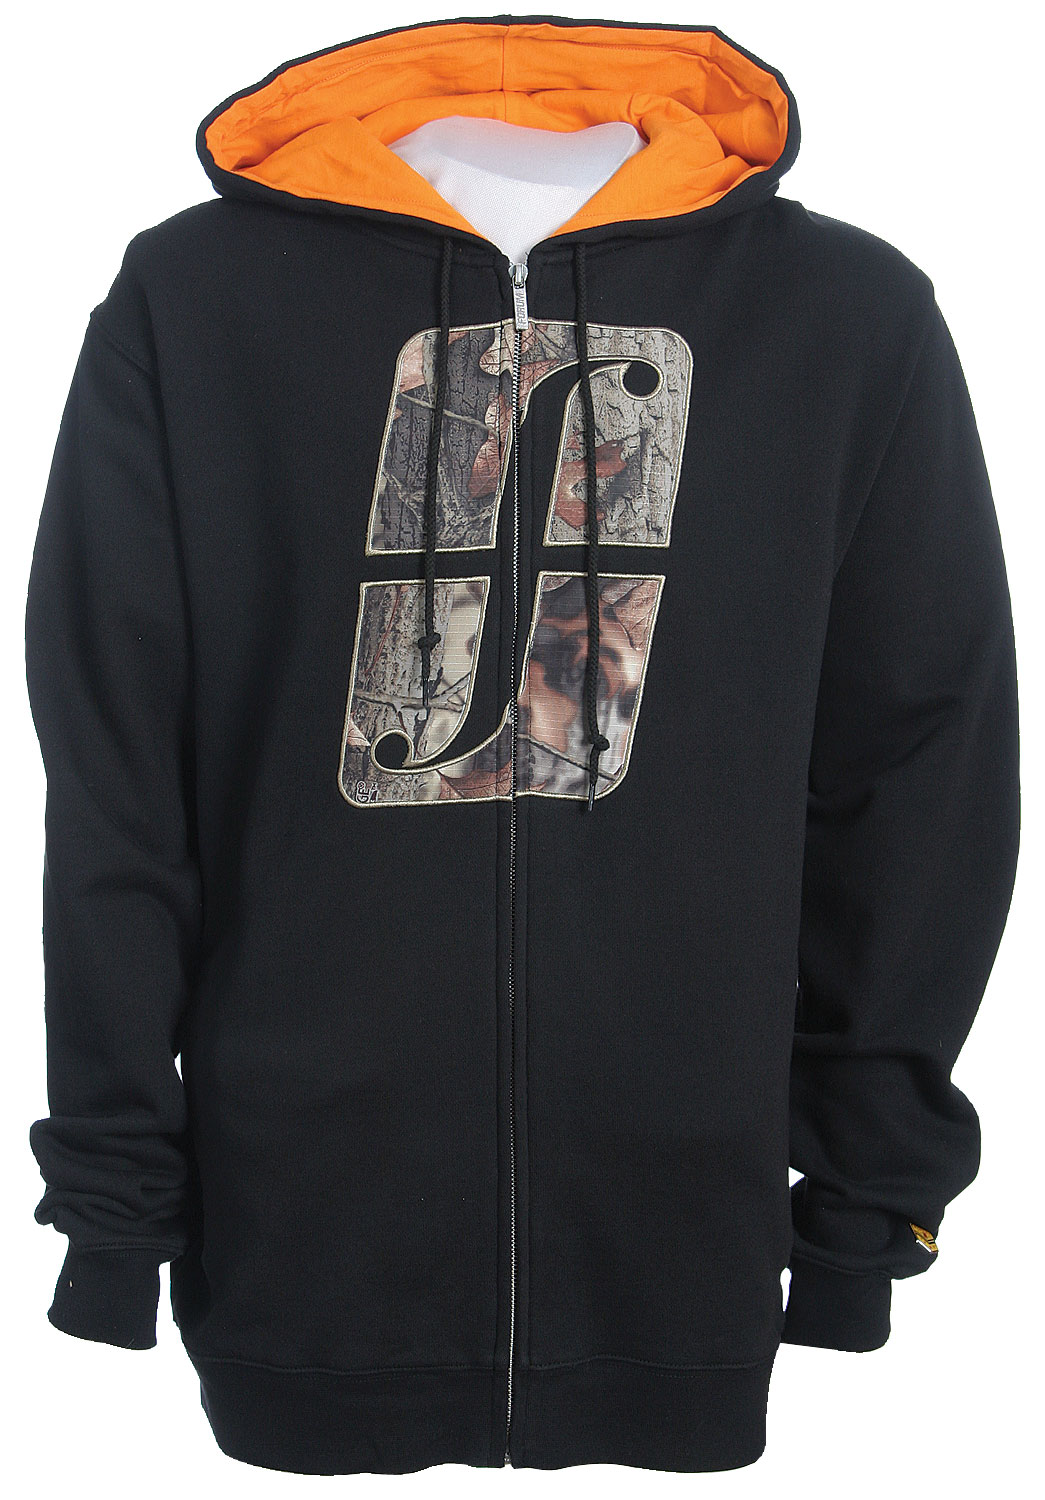 Listen up!  Forum has unleashed the Woodland Icon Zip Hoodie.  It is perfect for those sunny days on the slopes.  It's 80% cotton and 20% polyester, so it will definitely keep you comfortable when you are trying to get air.  Its Camo Forum icon on the chest brings mad style to the full zip.  Forget your gloves   No worries the Woodland Icon Zip Hoodie comes equip with hand warmer pockets to keep your fingers cozy.Key Features of The Forum Woodland Icon Full Zip Hoodie: BR.80% Cotton 20% Polyester  Woodland Camo Applique  Hand warmer pockets - $34.95